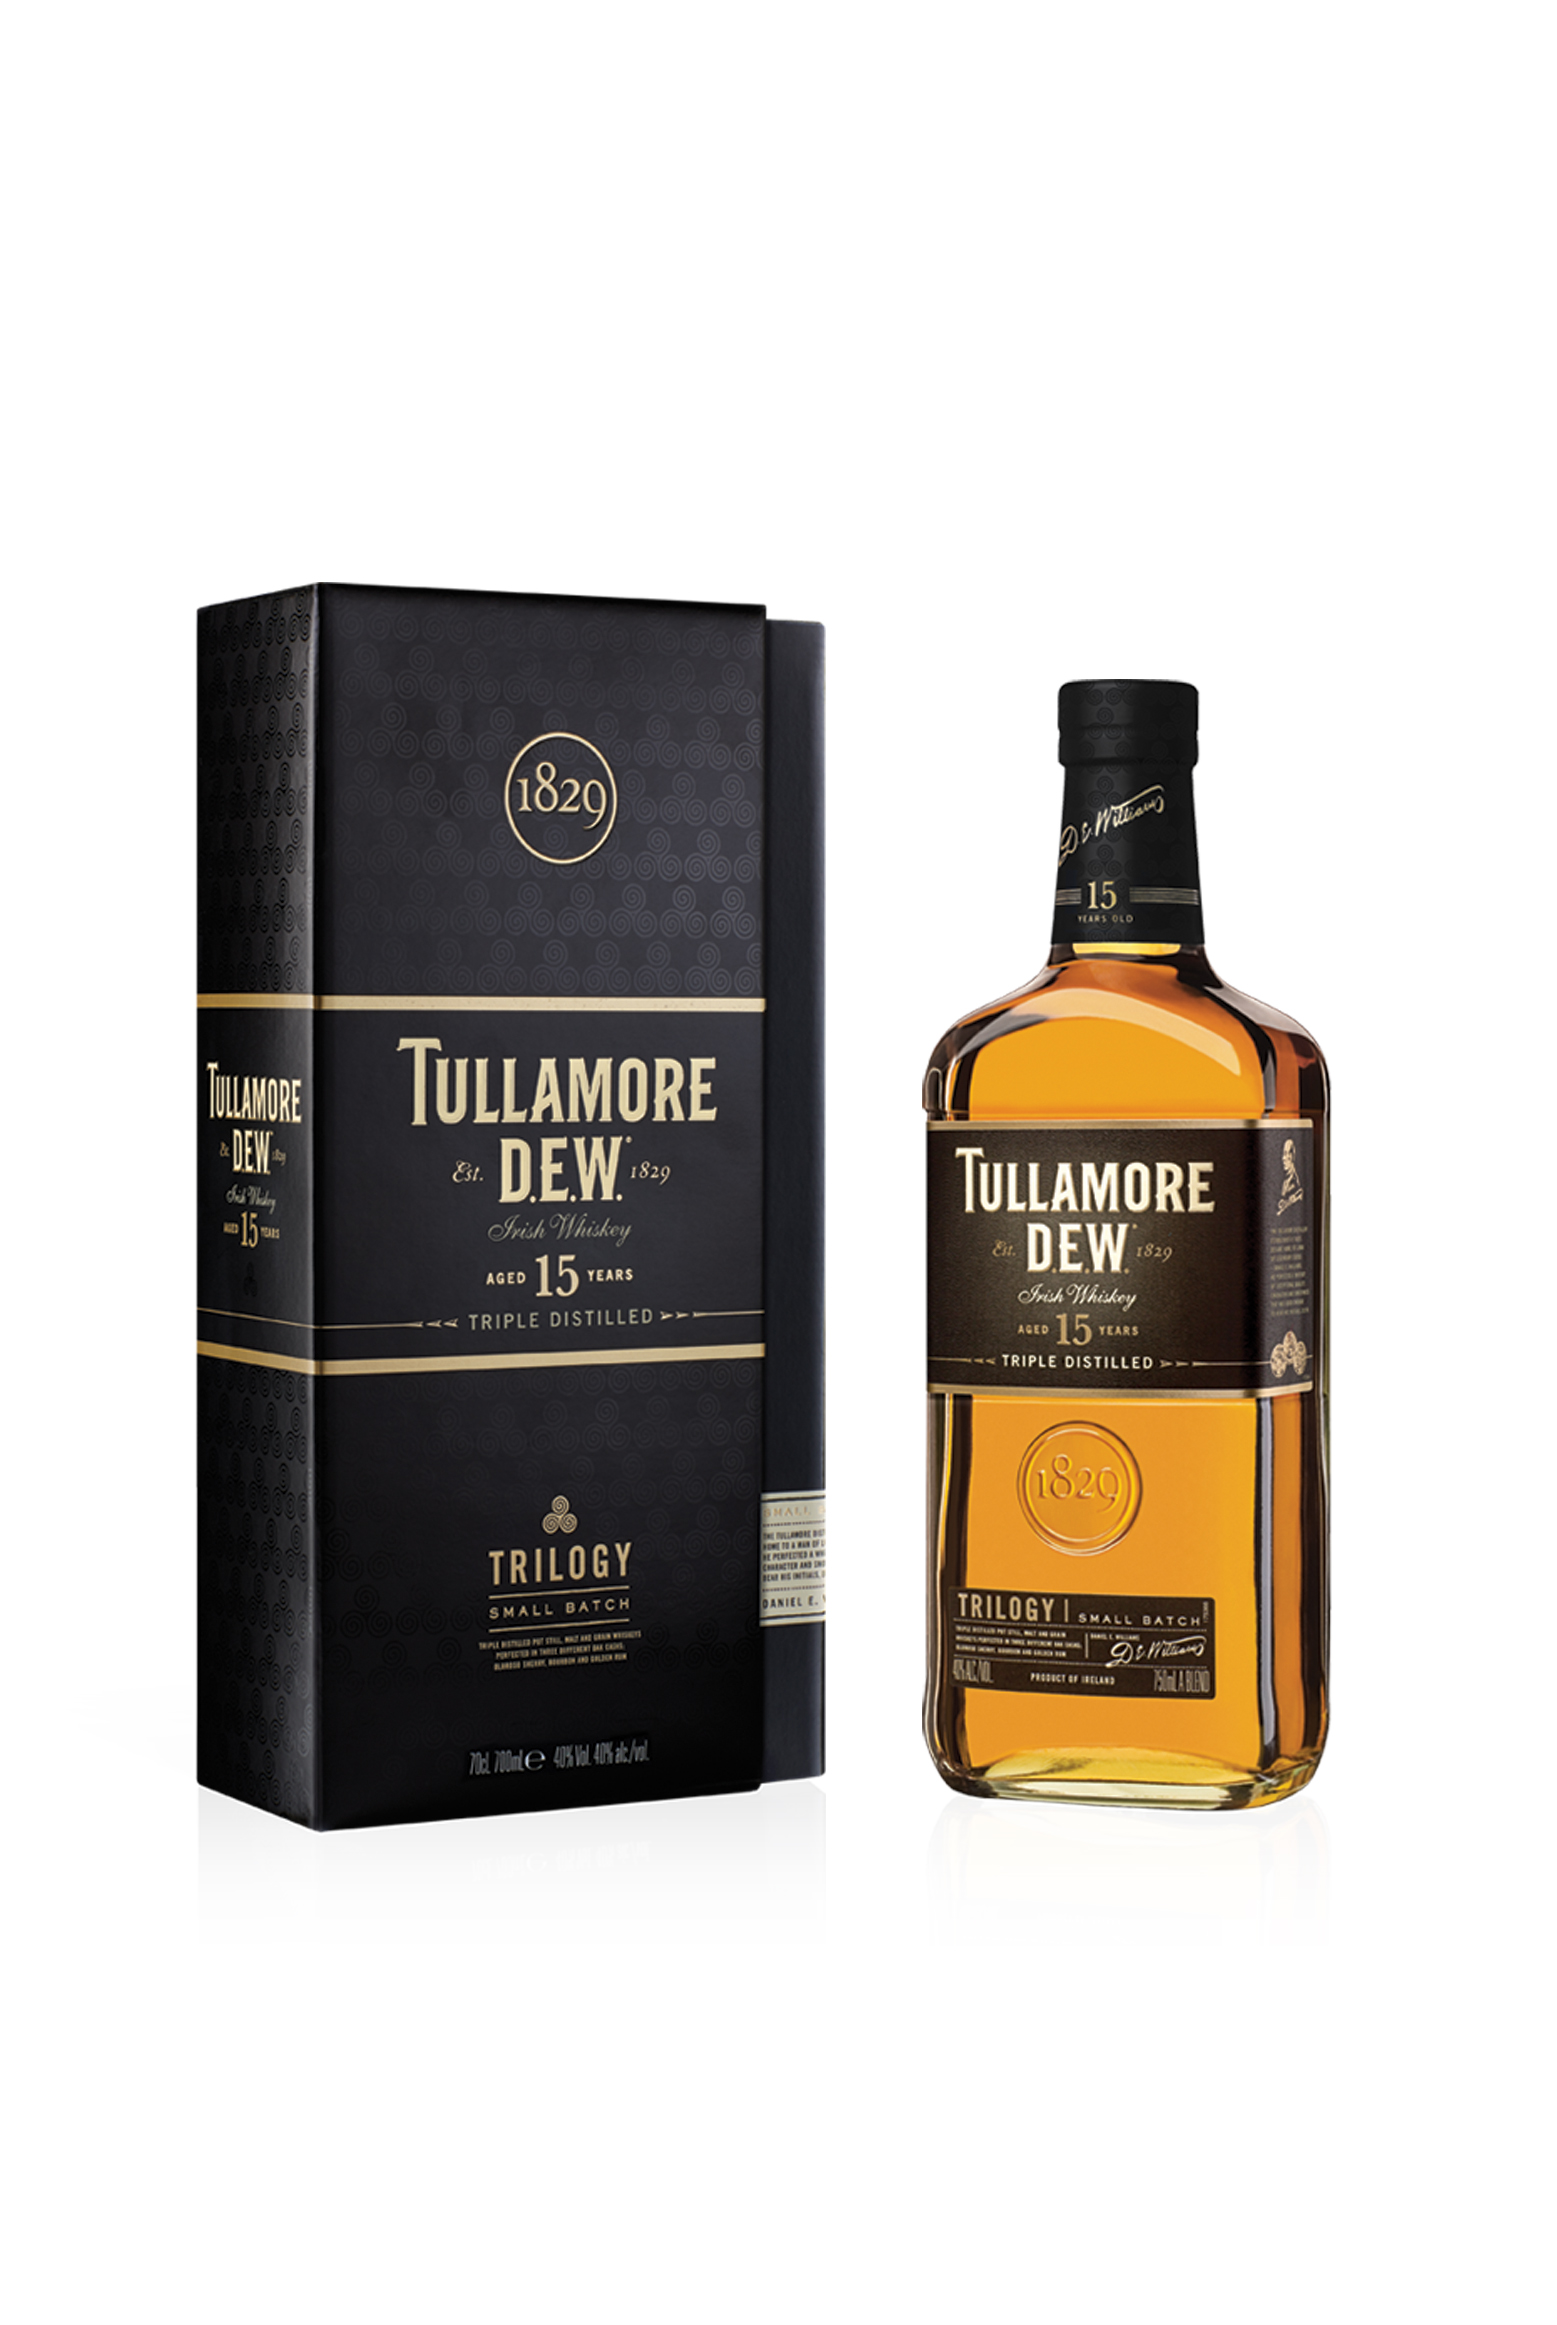 Tullamore D.E.W Whiskey – It's Three Times Better photo